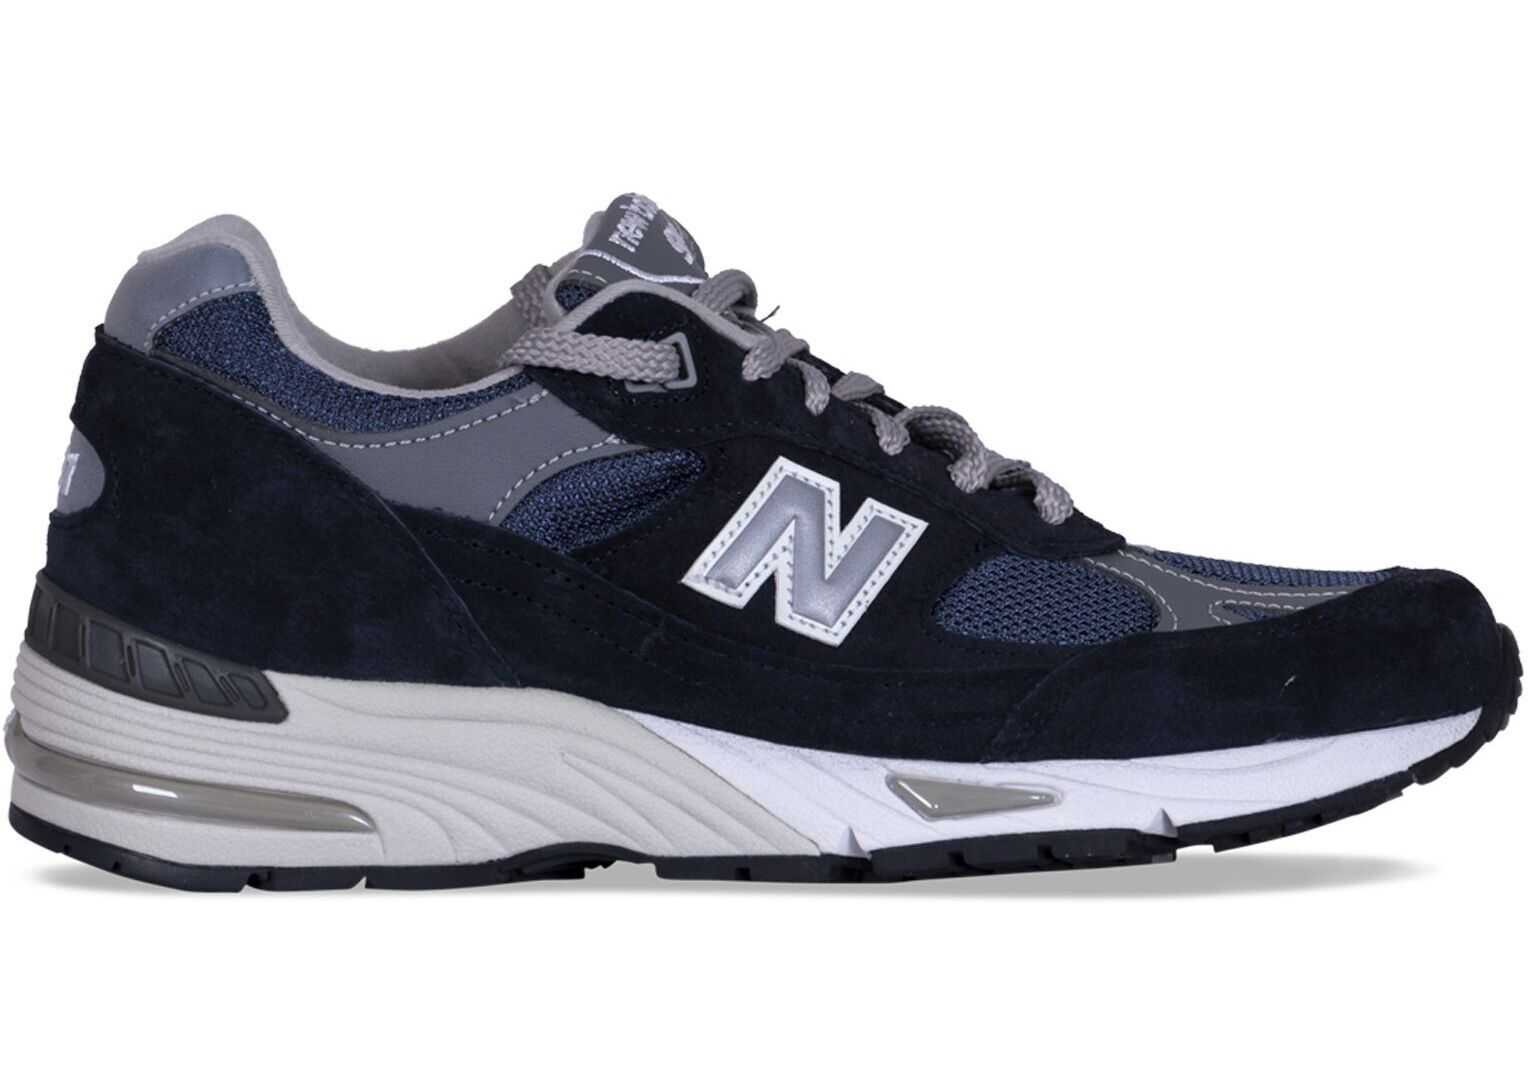 New Balance Nbm991Nv Suede Sneakers BLUE